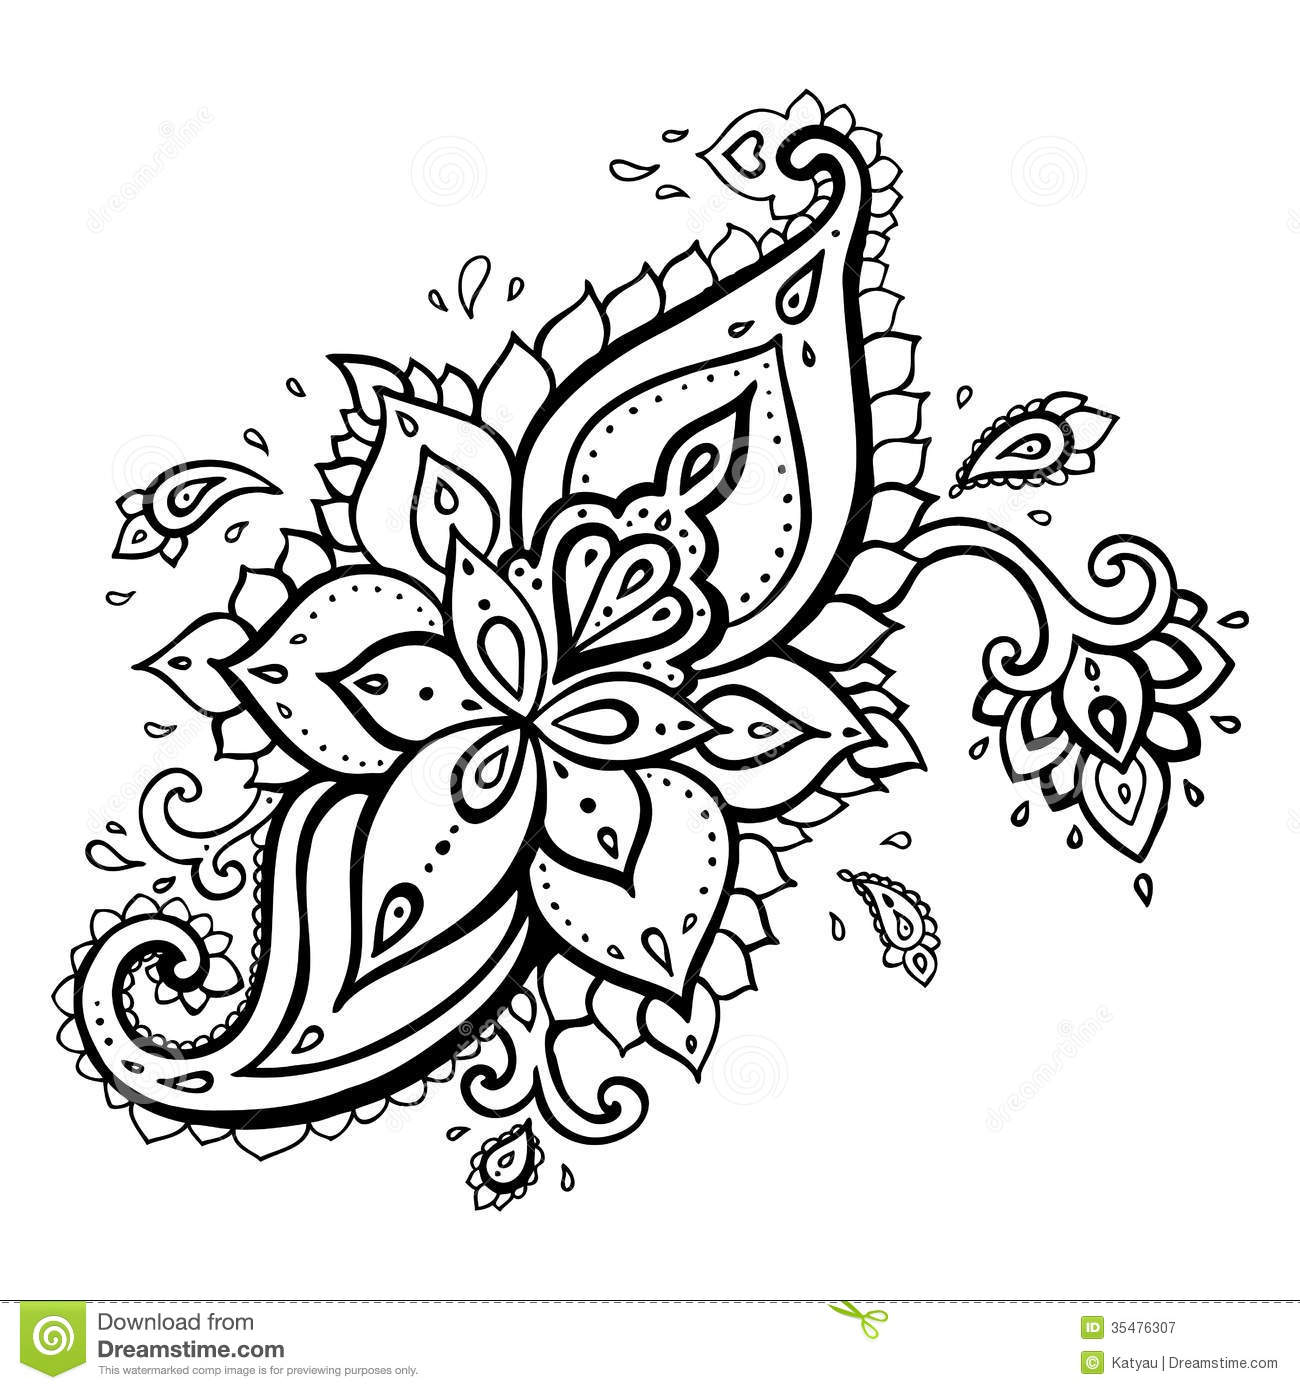 Royalty Free Stock Photography Paisley Ethnic Ornament Vector Illustration Isolated Image35476307 on free printable mandala patterns